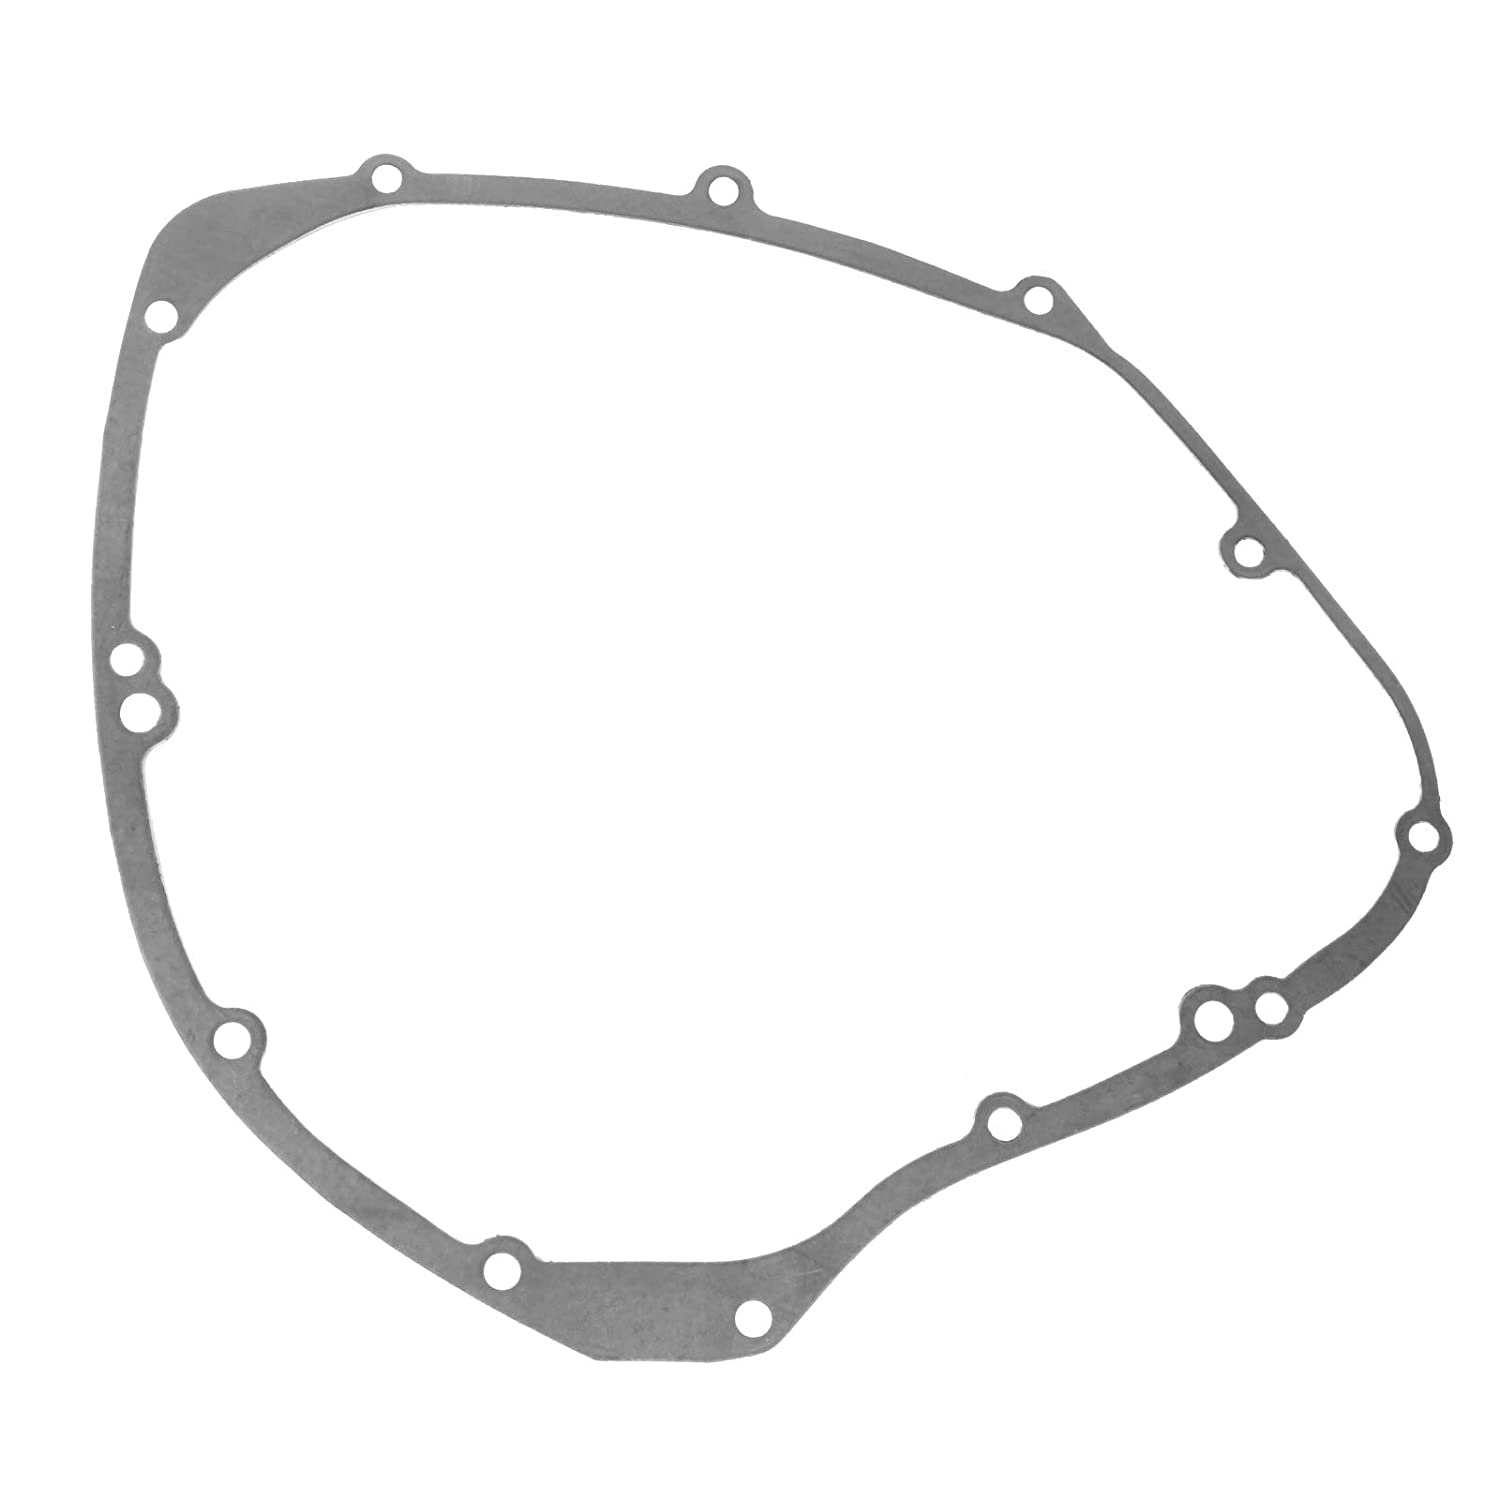 Caltric Stator Cover Gasket for Yamaha 3D8-15451-00-00